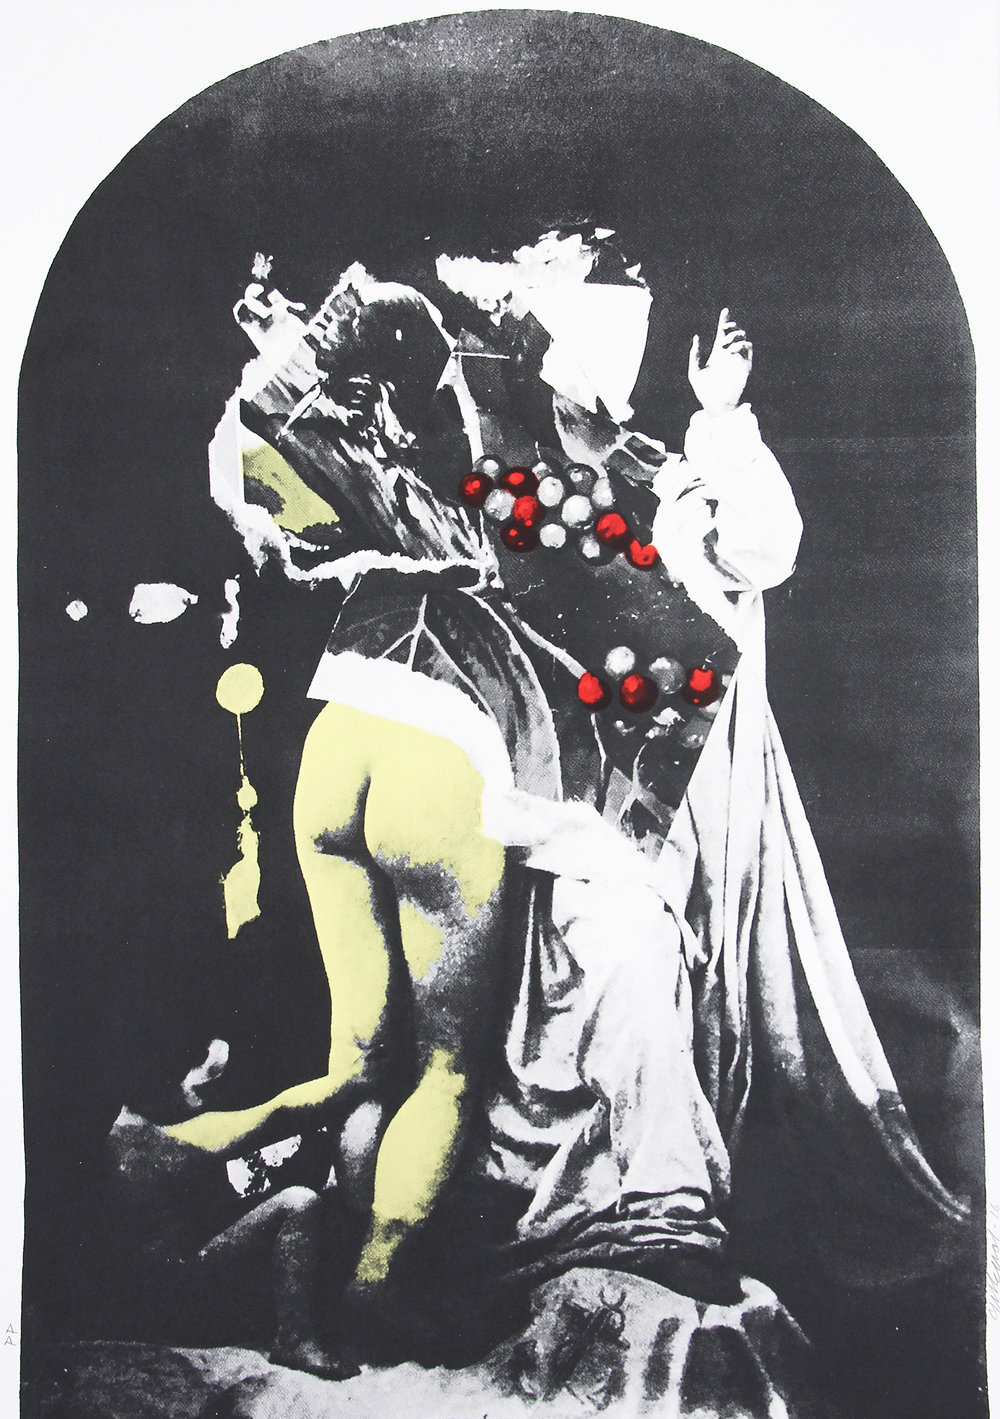 'Incorrupt Bodies' - New Screenprints available, edition of 30 + Artist's Proof